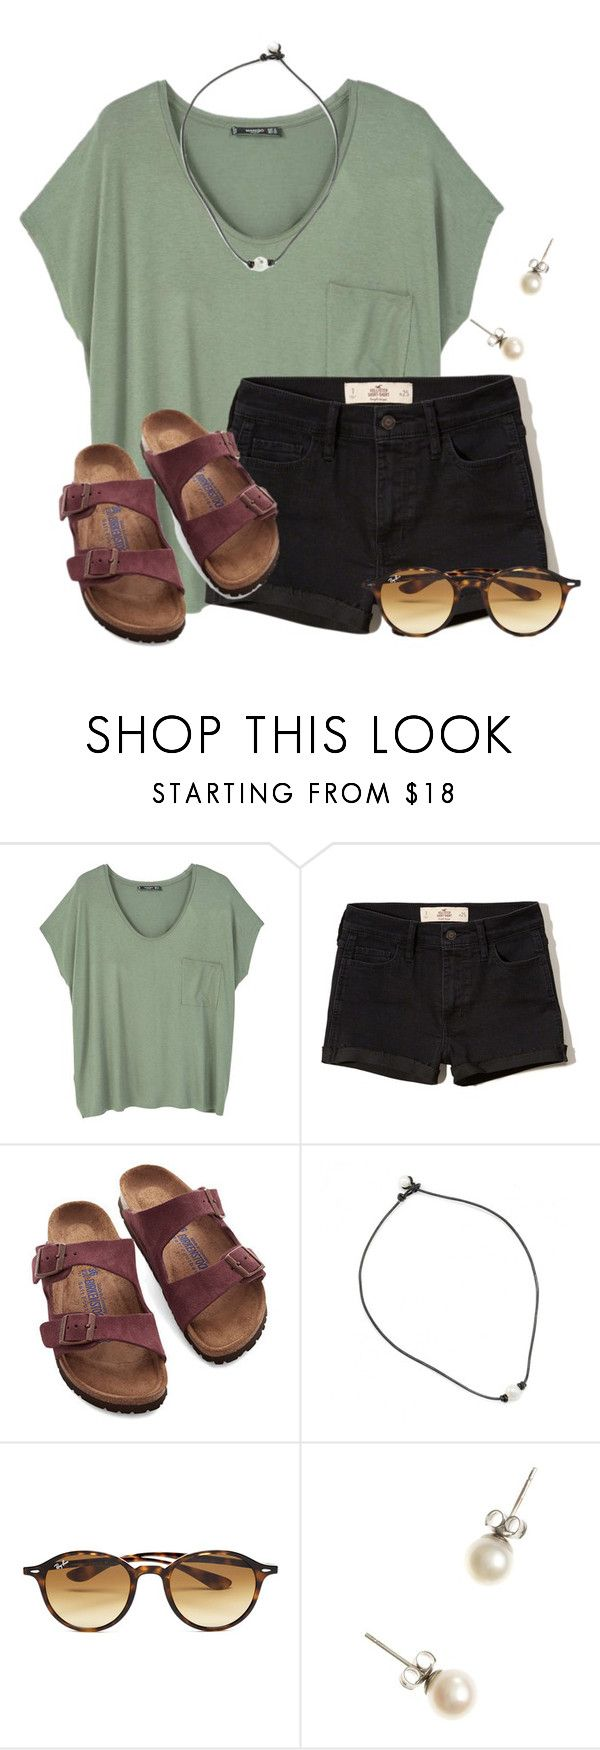 ~she has that sparkle in her eyes~ by flroasburn ❤ liked on Polyvore featuring MANGO, Hollister Co., Birkenstock, Ray-Ban and J.Crew